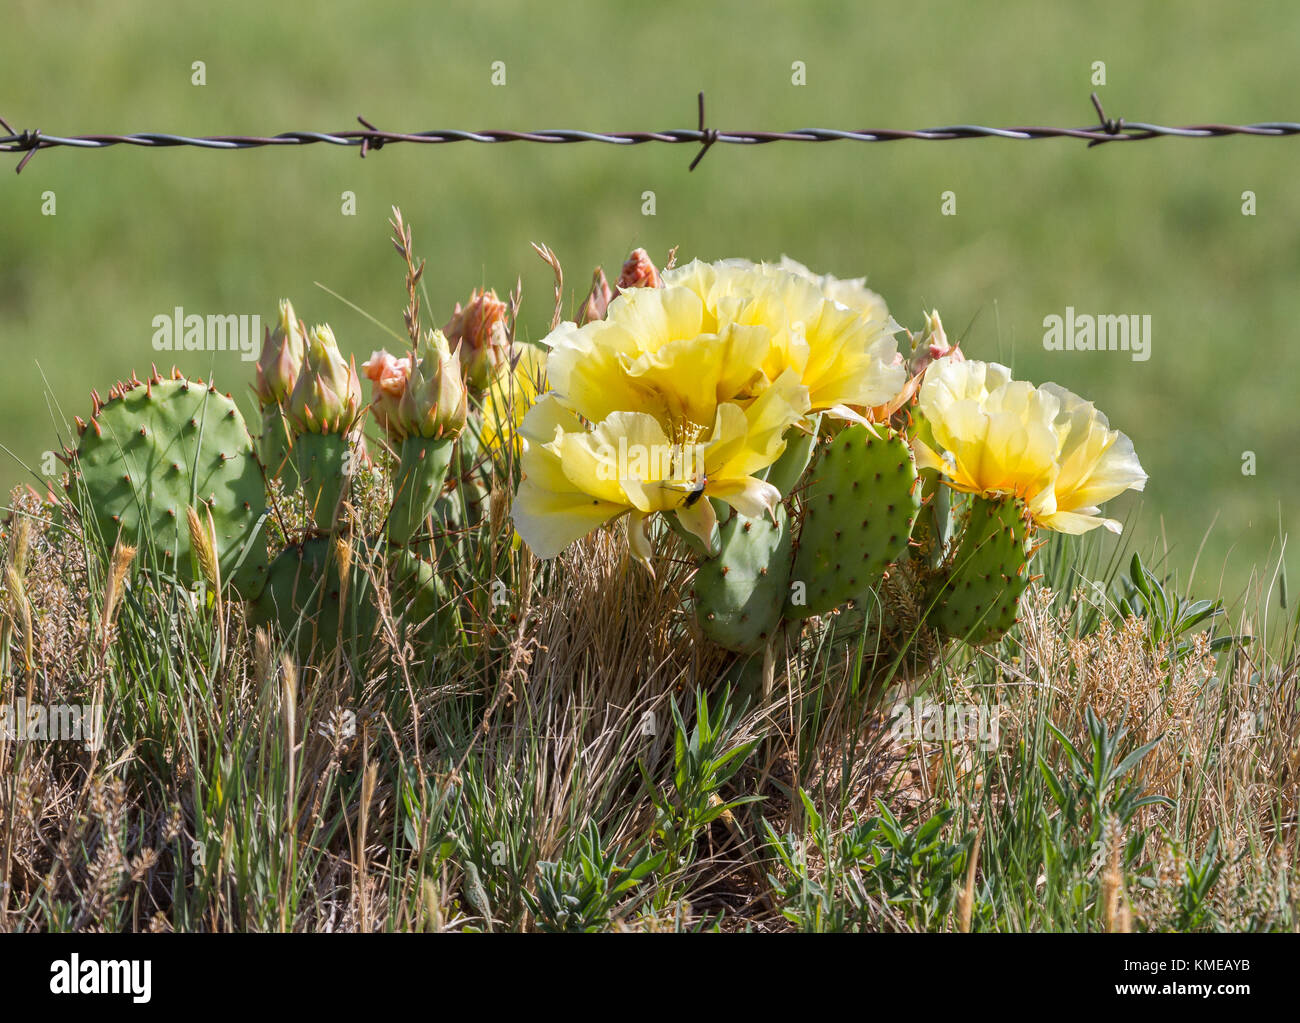 Prickly Pear Cactus Growing  Under a Barbed Wire Fence Is in Full Bloom - Stock Image